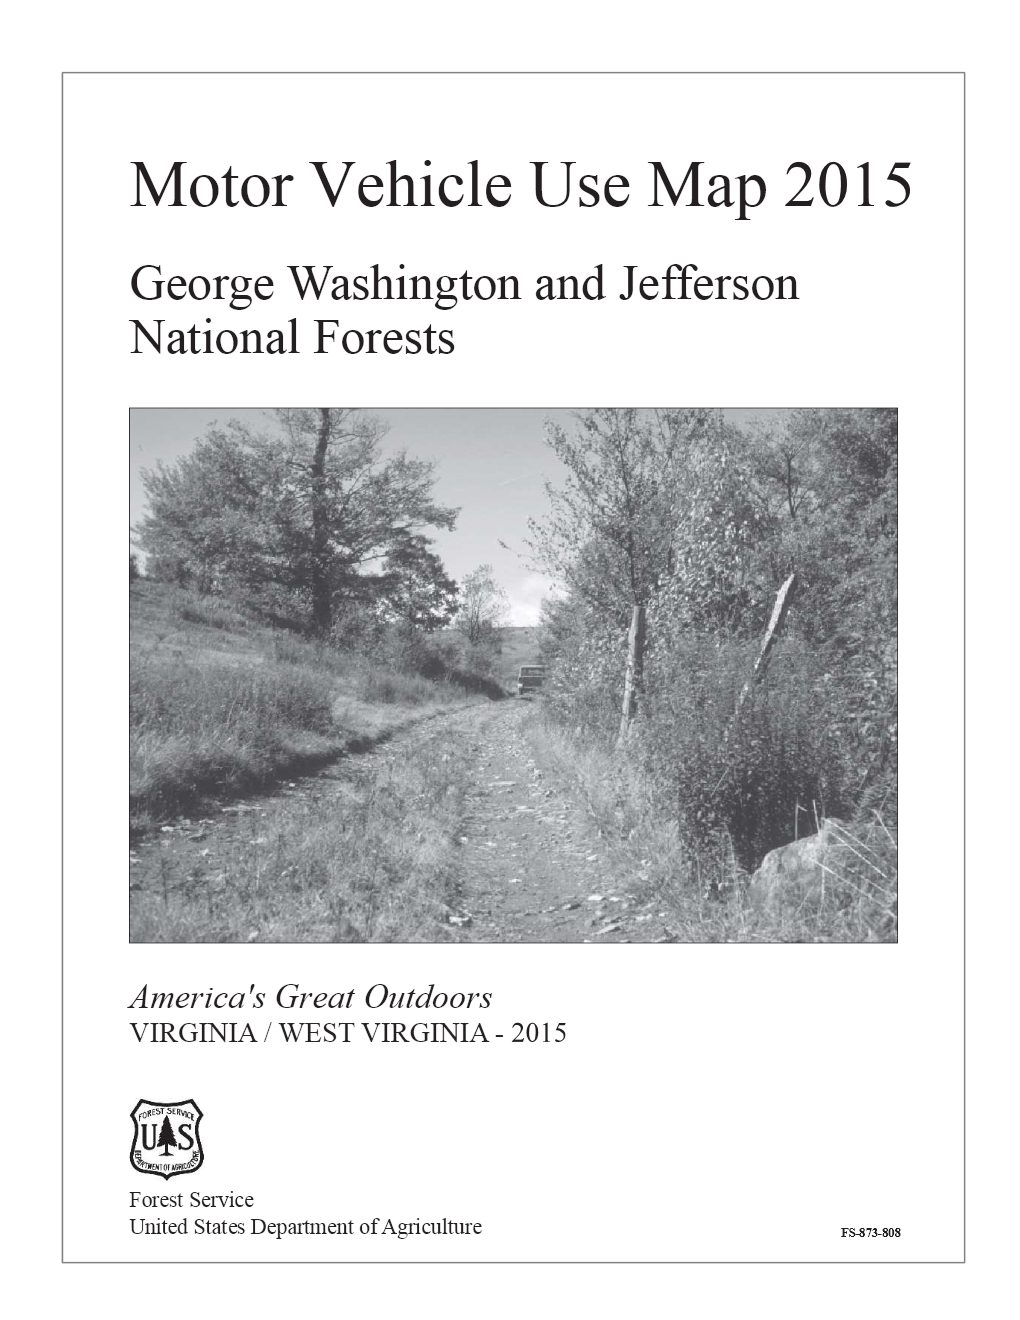 George Washington & Jefferson National Forests - Maps & Publications